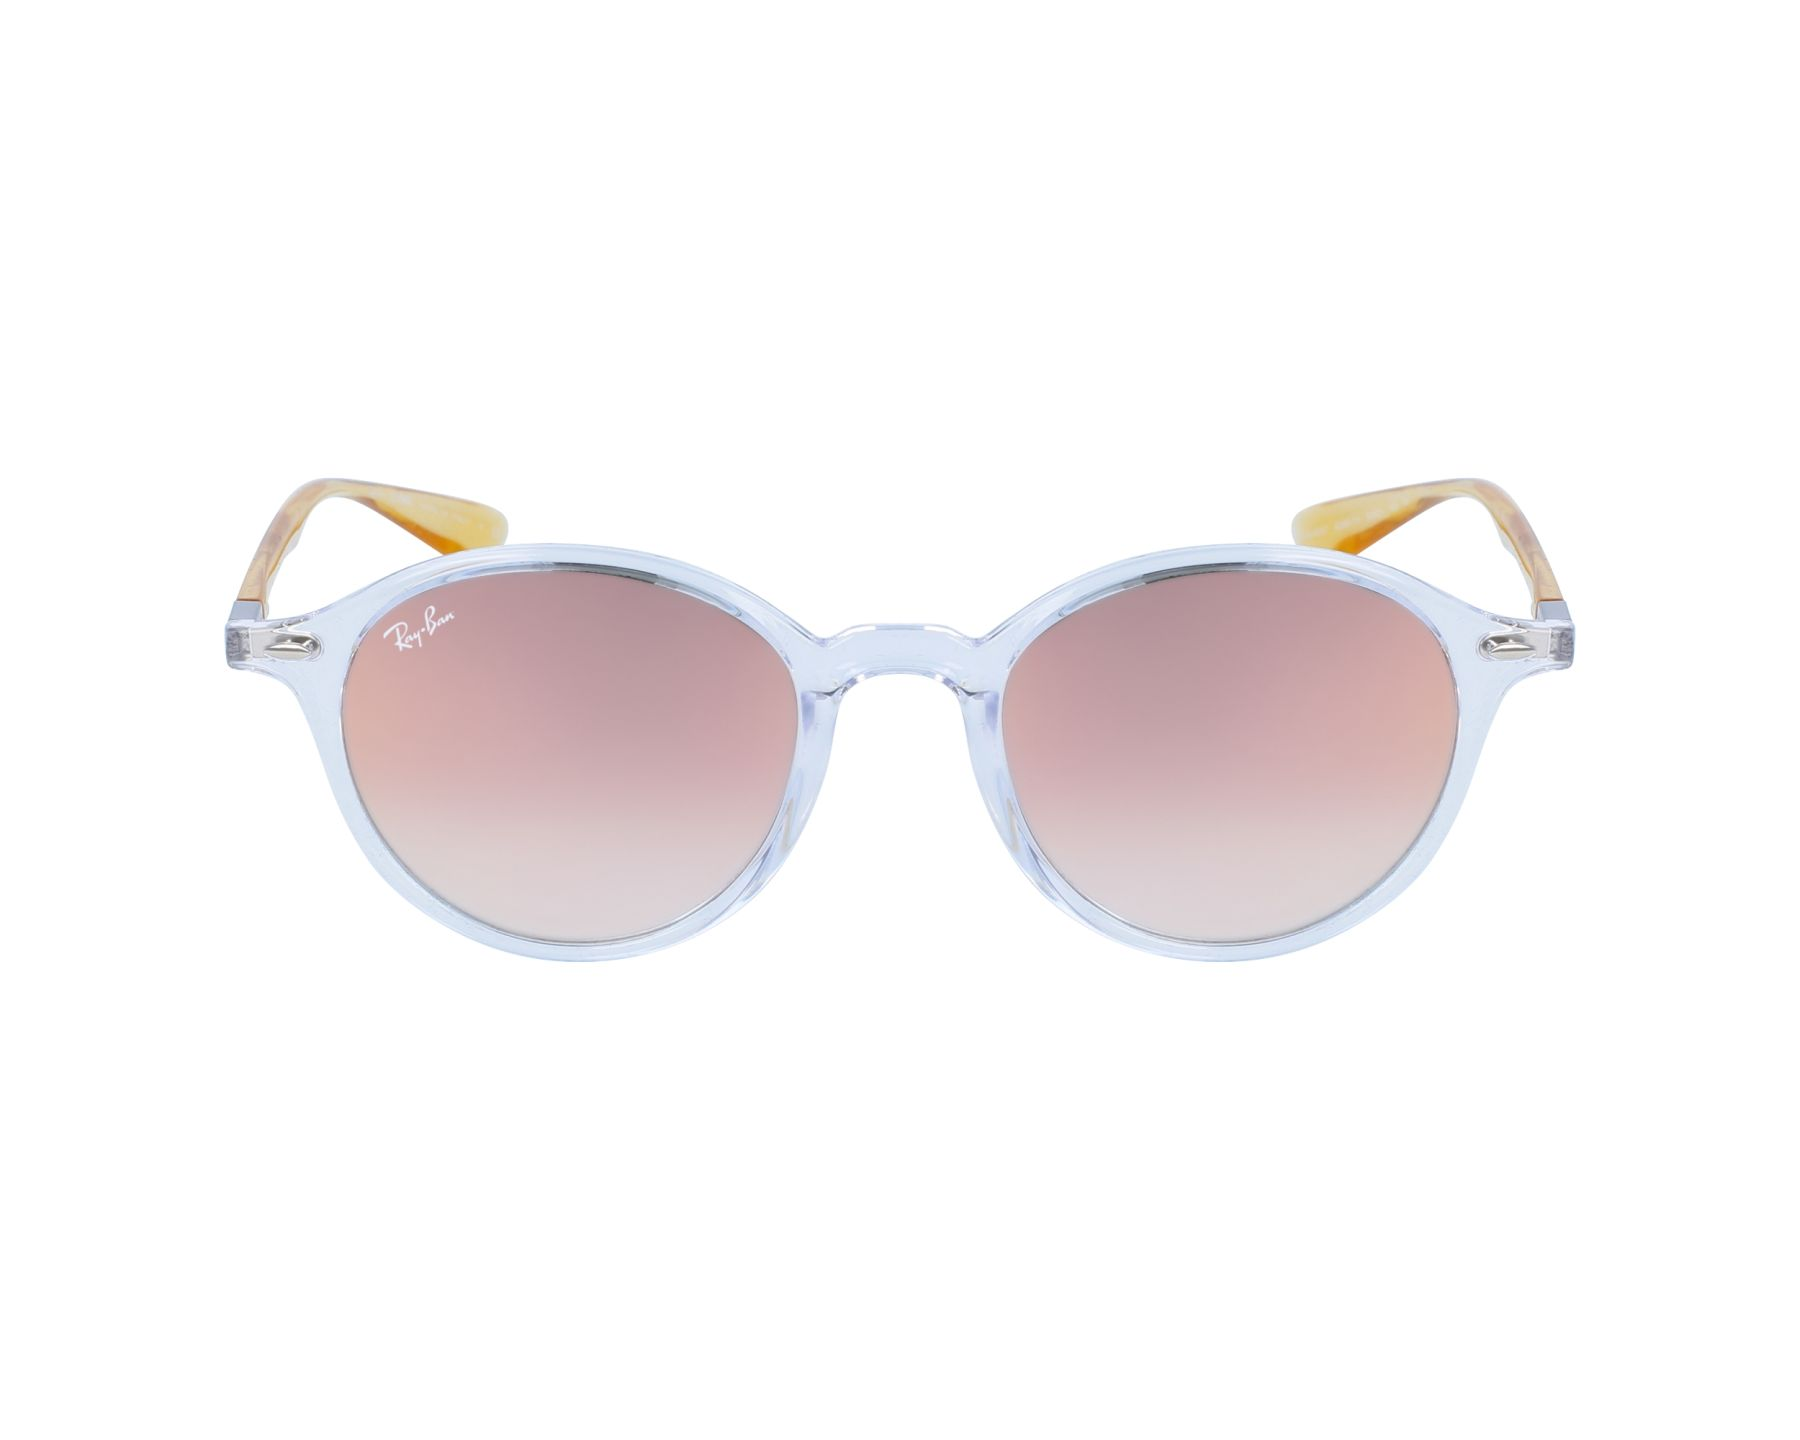 584d8562159 Sunglasses Ray-Ban RB-4237 62887Y 50-21 White Yellow profile view